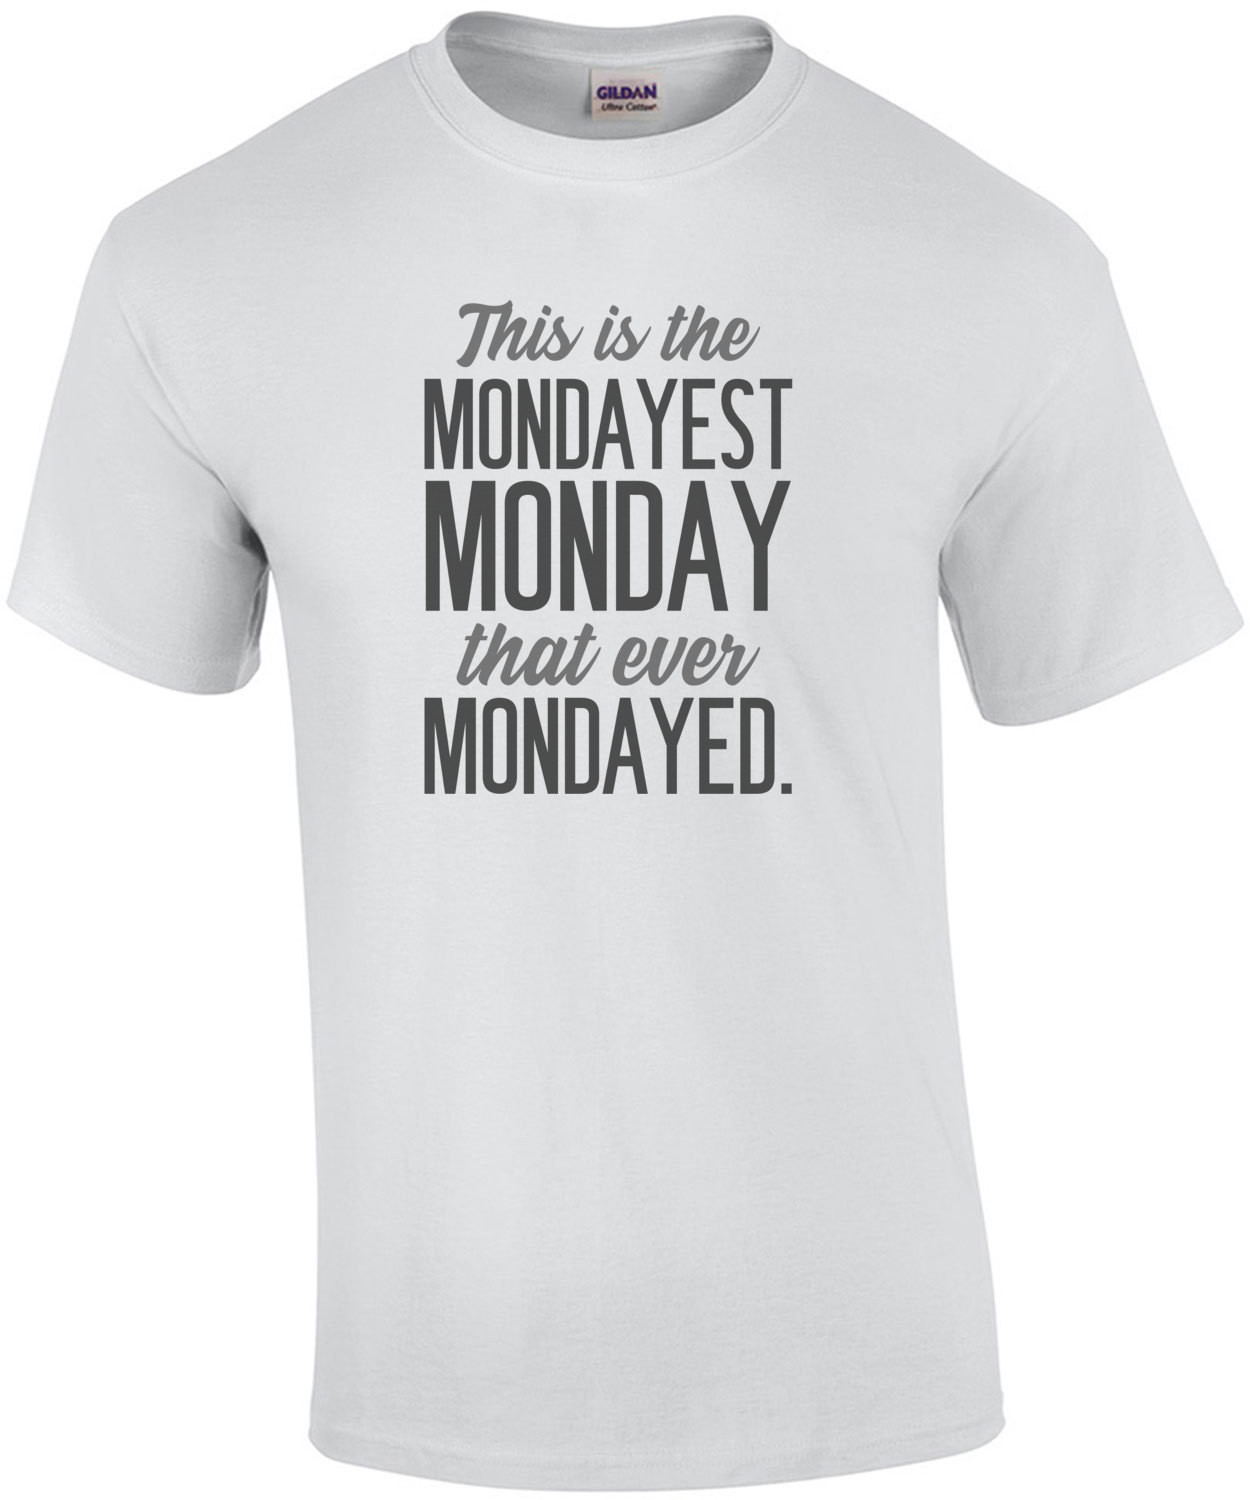 This is the mondayest Monday that ever Mondayed - Office Humor T-Shirt